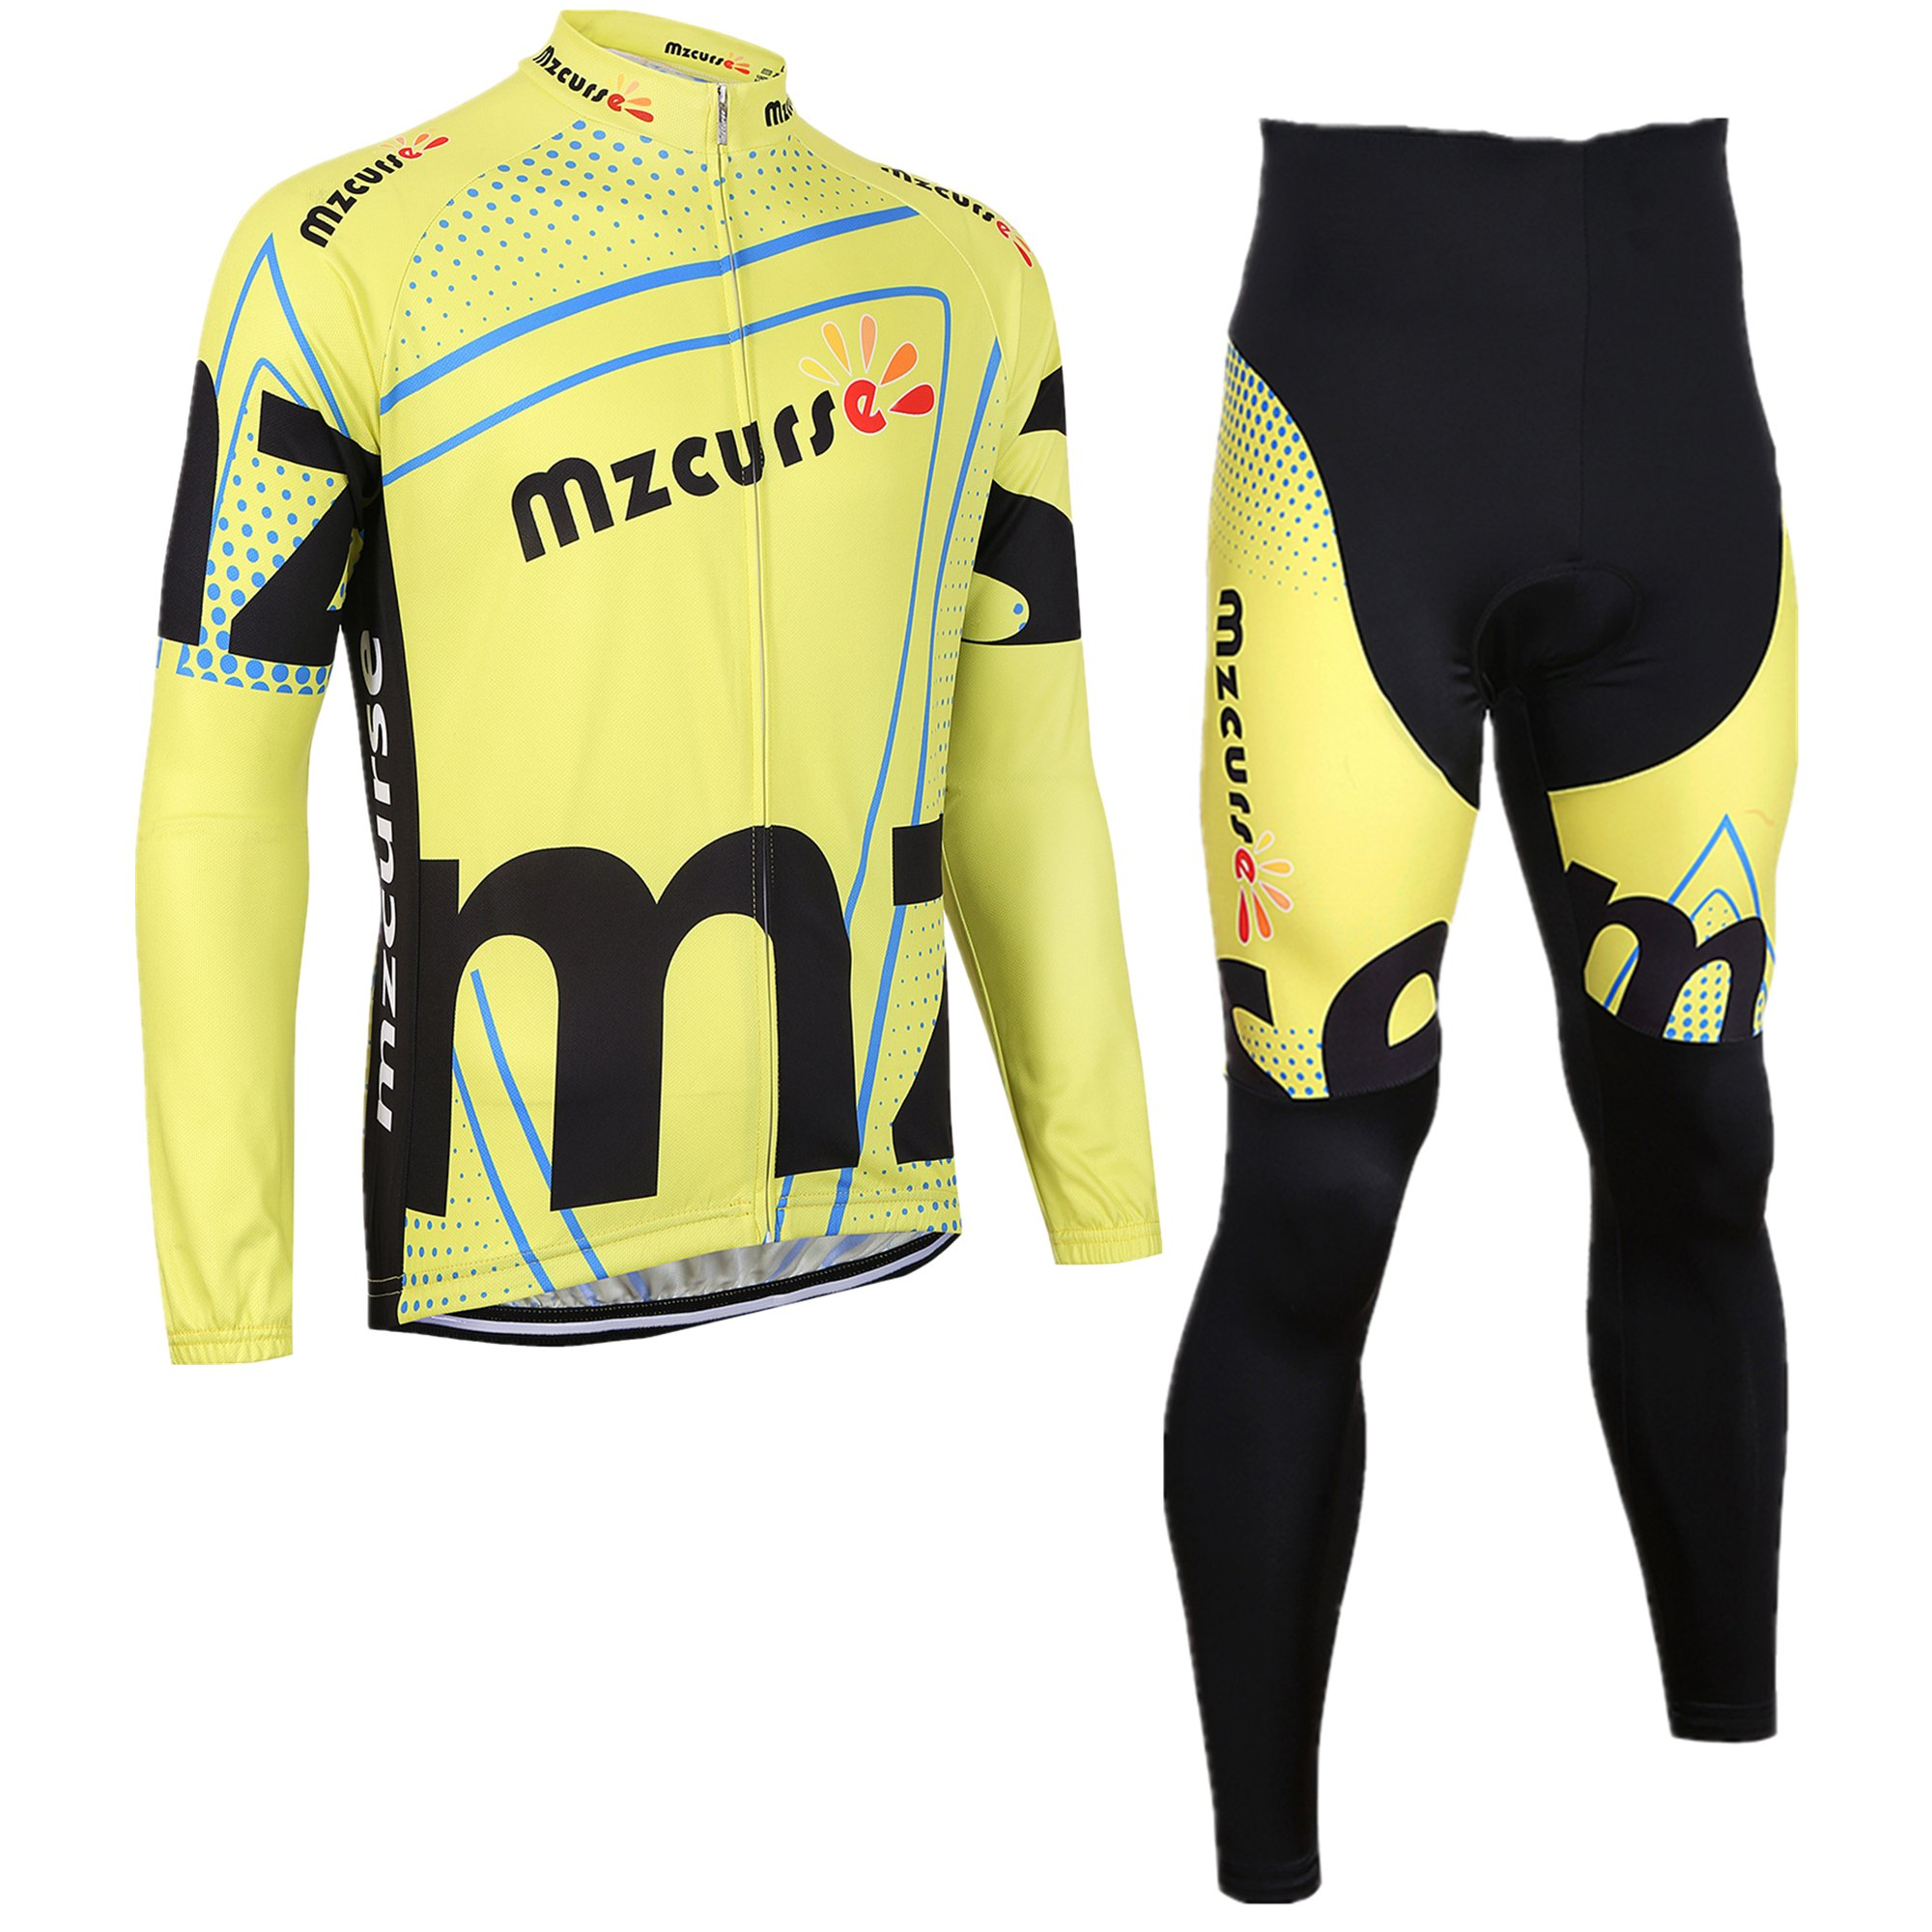 mzcurse Bicycle Bike Cycling Long Sleeve Jersey Jacket + Pants Shorts Set Skin Suits (Yellow, XXX-Large,please check the size chart) by mzcurse